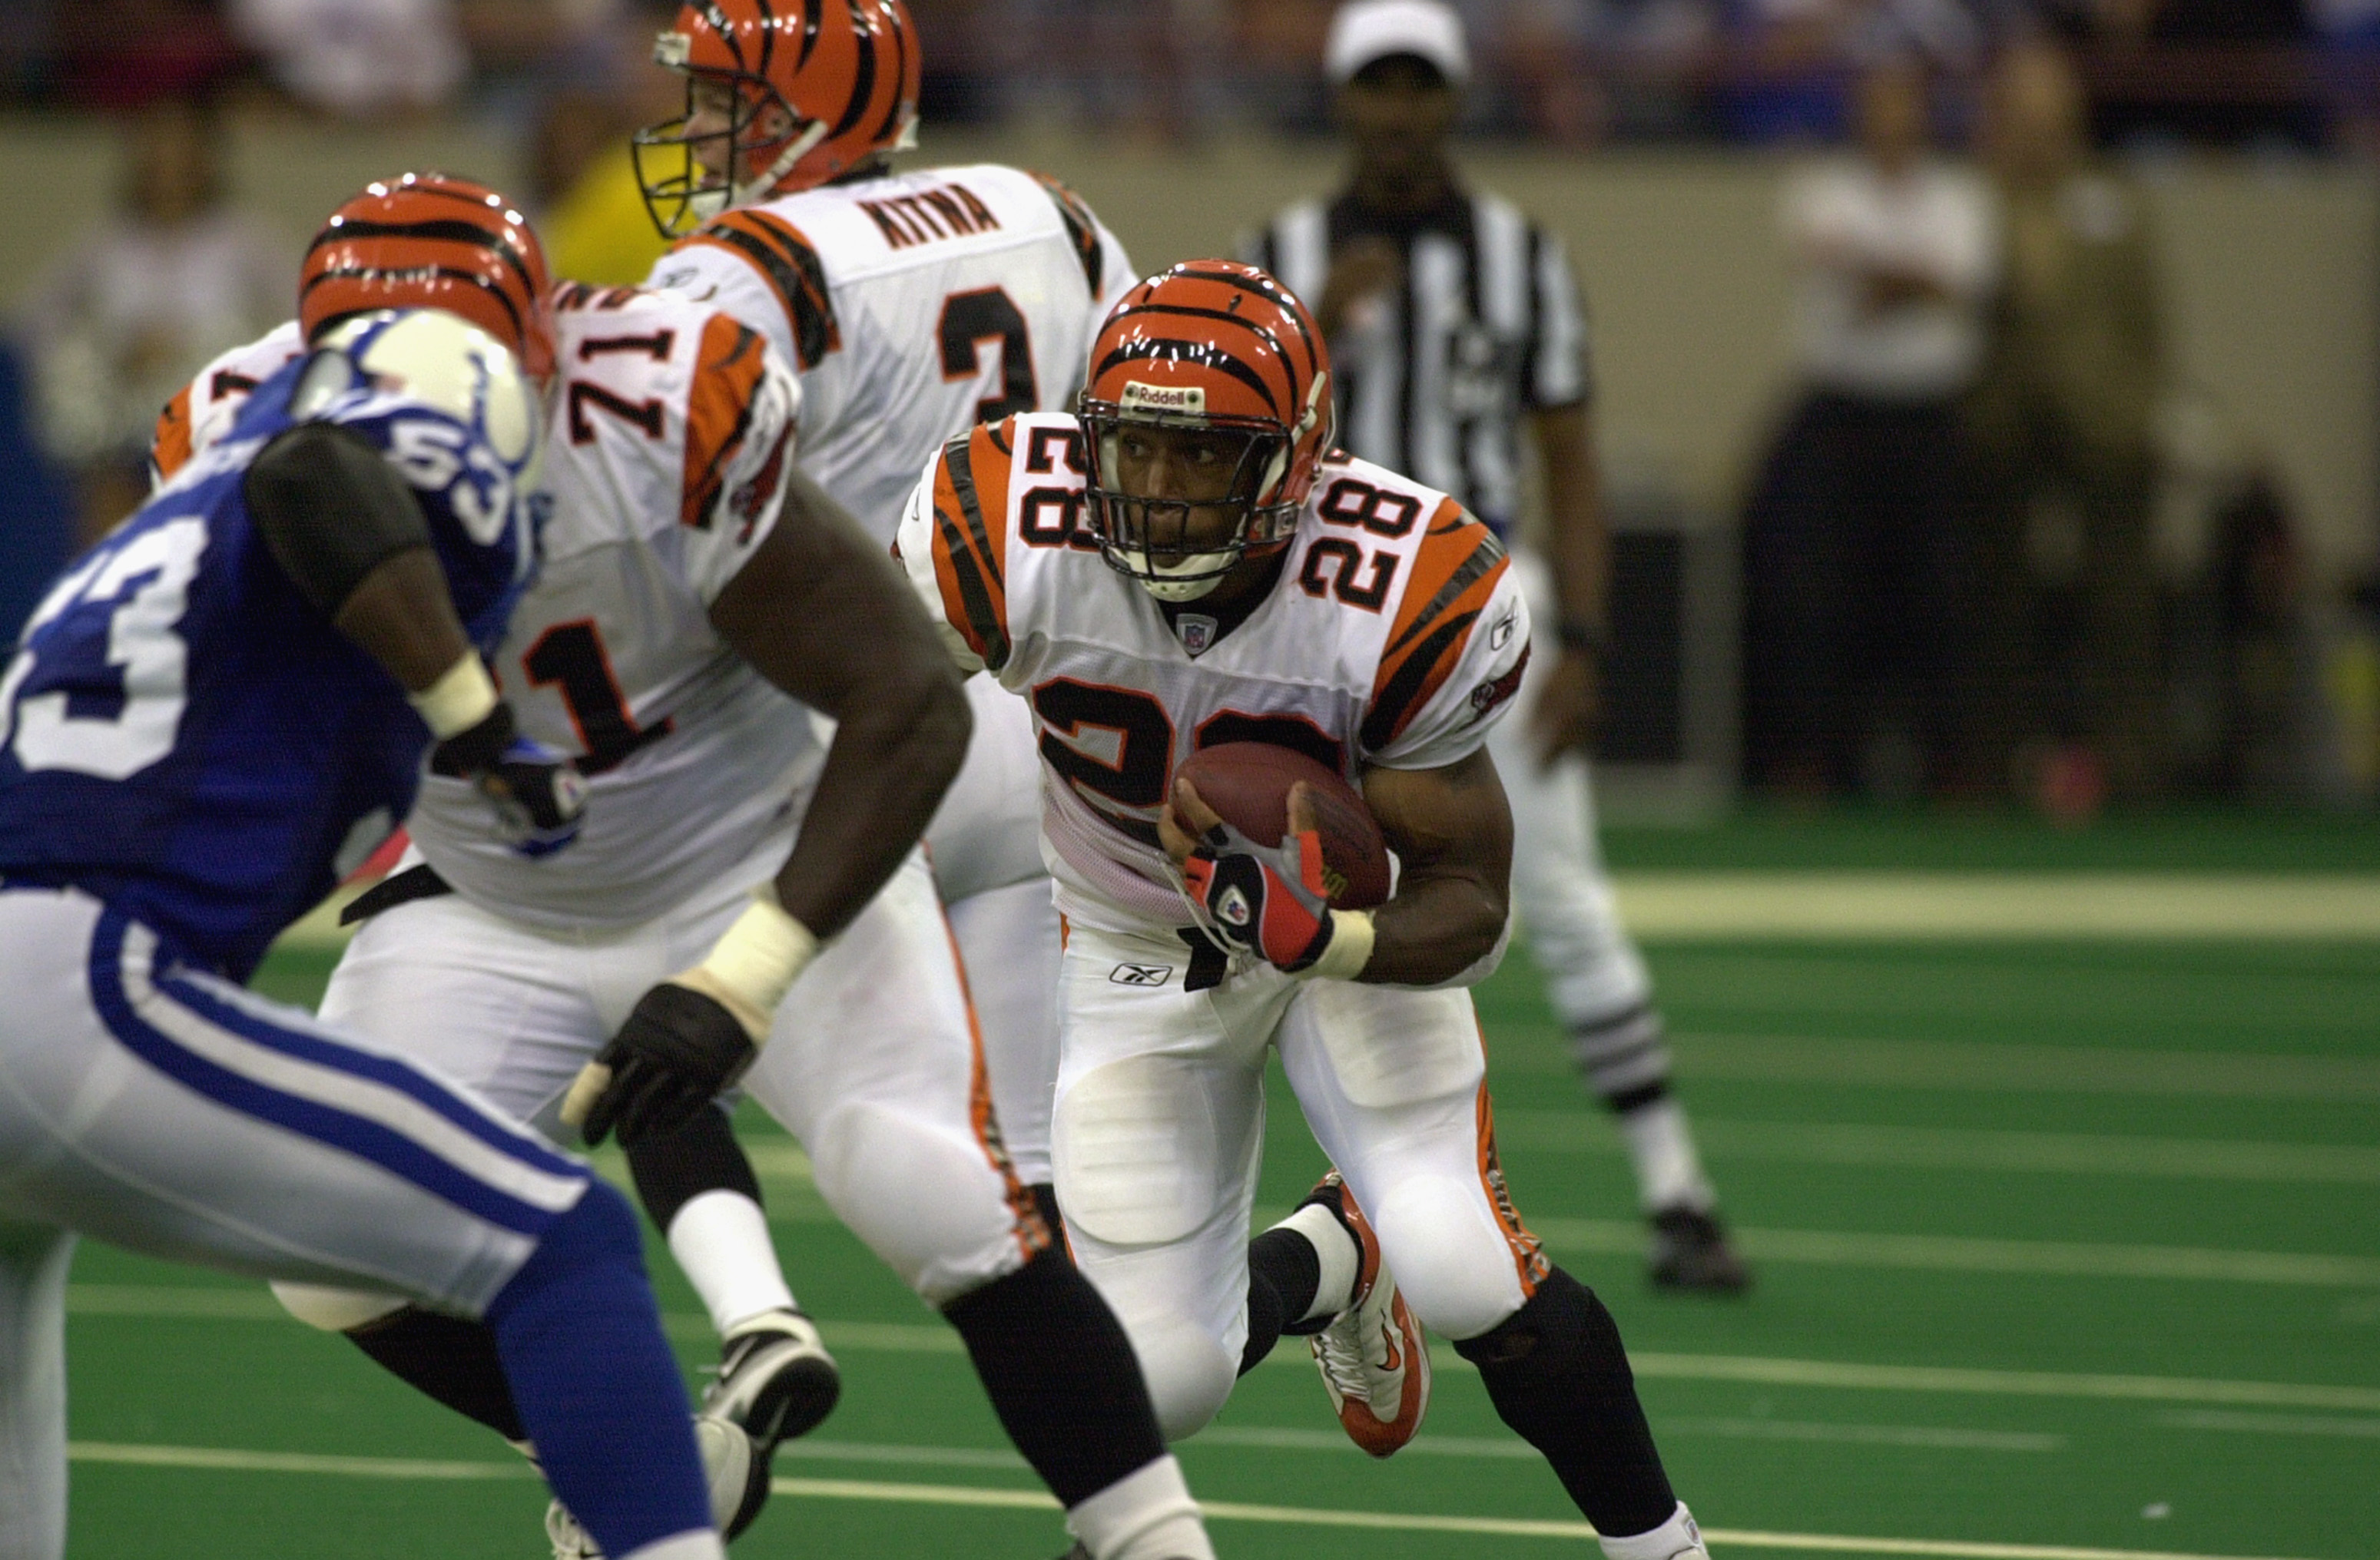 INDIANAPOLIS - OCTOBER 6:  Running back Corey Dillon #28 of the Cincinnati Bengals runs with the ball during the NFL game against the Indianapolis Colts at the RCA Dome on October 6, 2002 in Indianapolis, Indiana. The Colts defeated the Bengals 28-21. (Ph